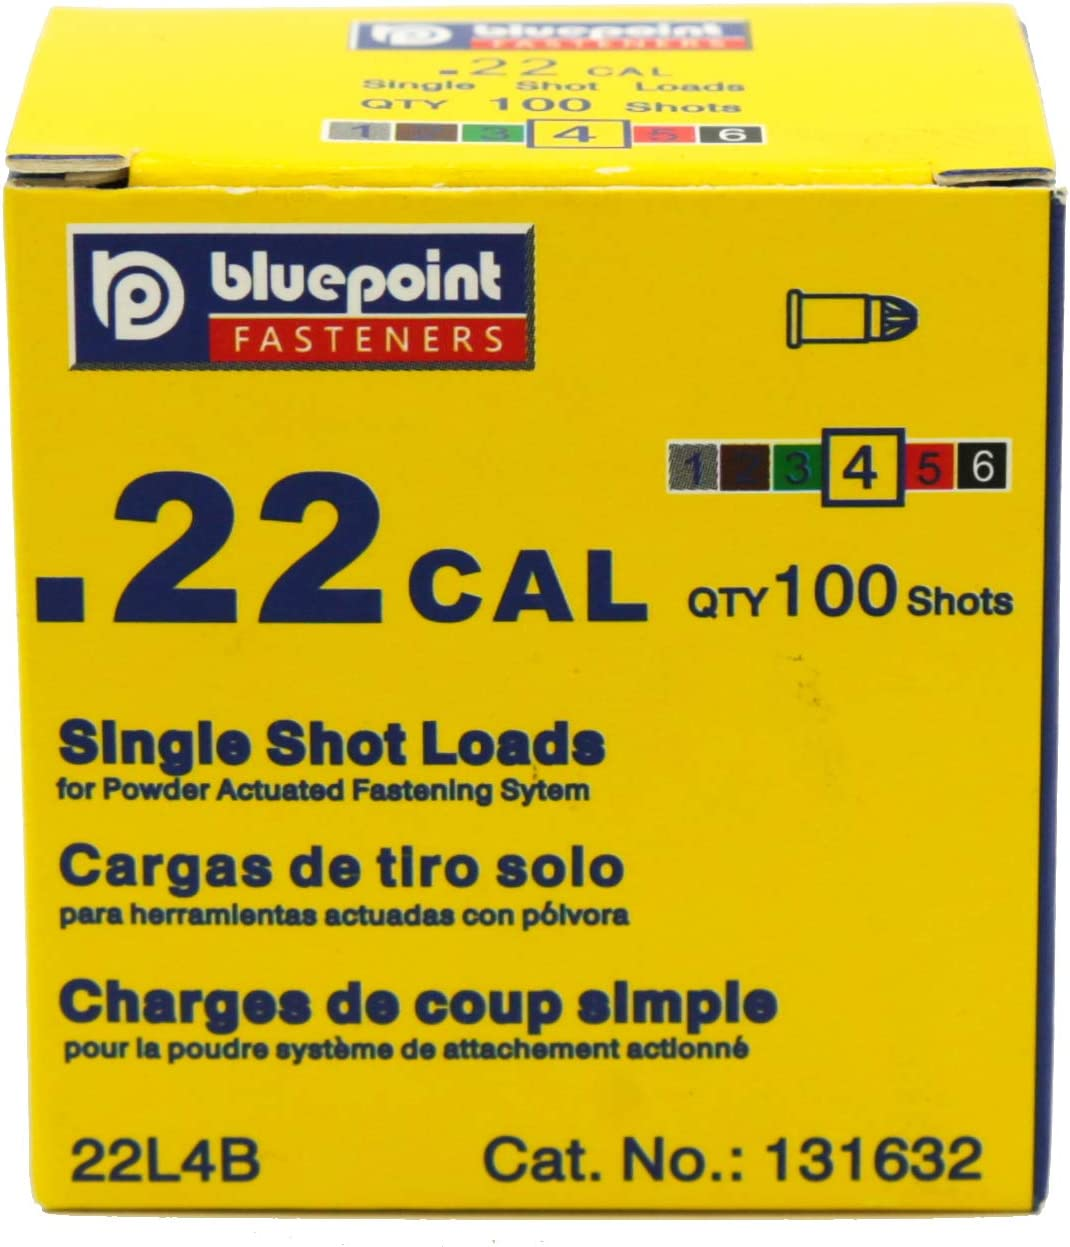 Item# 22SL4B. 100 - Count BLUEPOINT .22 Cal YELLOW Straight Wall Single Shot Powder Load for special powder actuated tools,